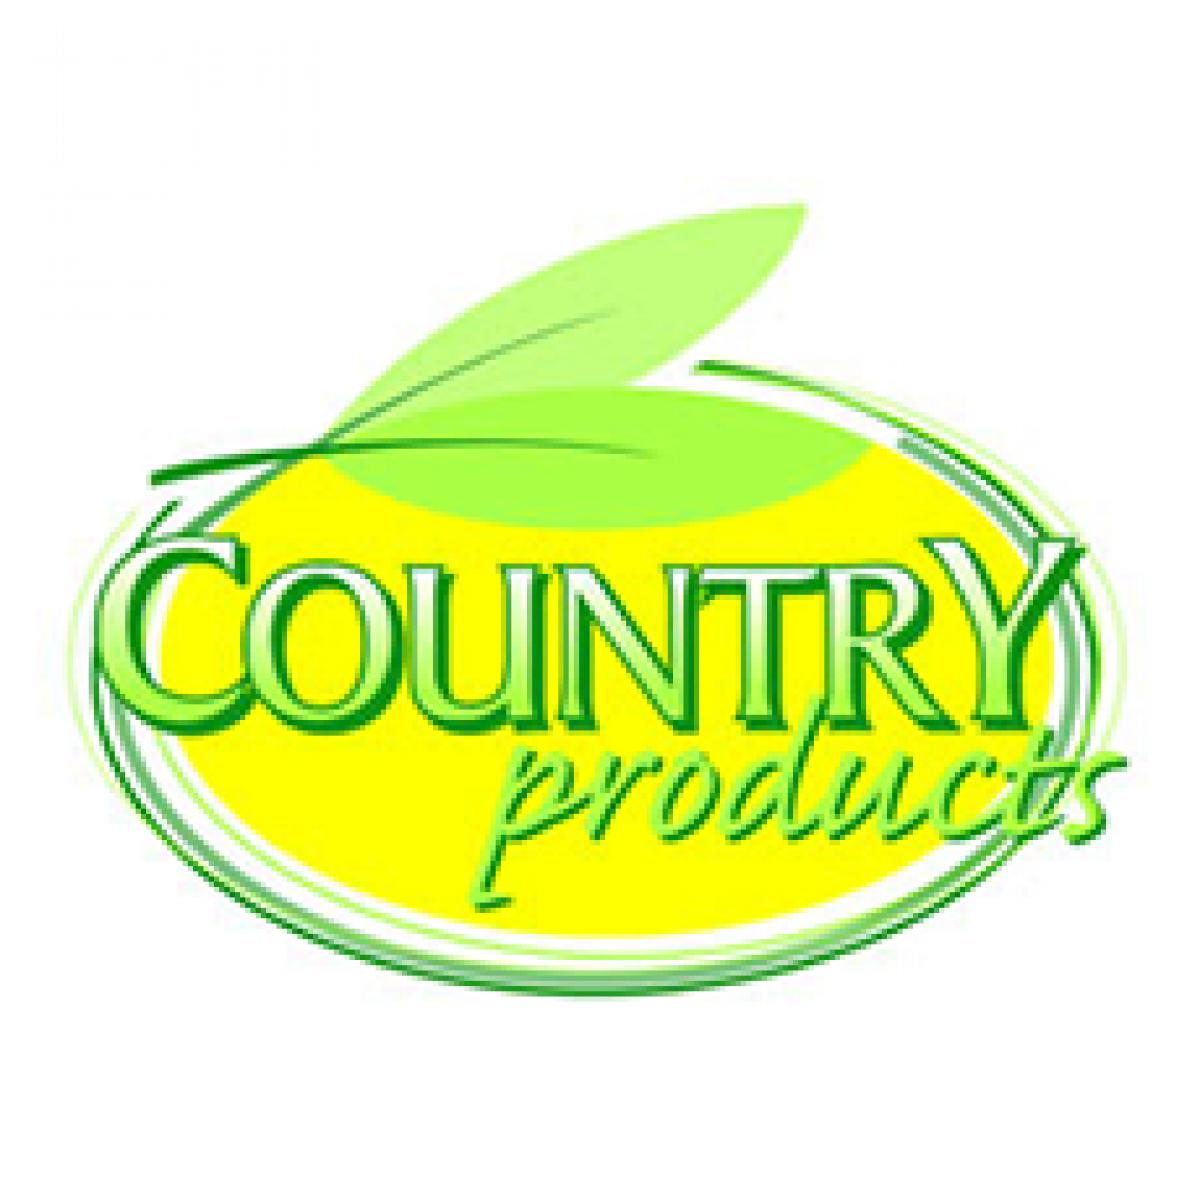 Countryproducts230